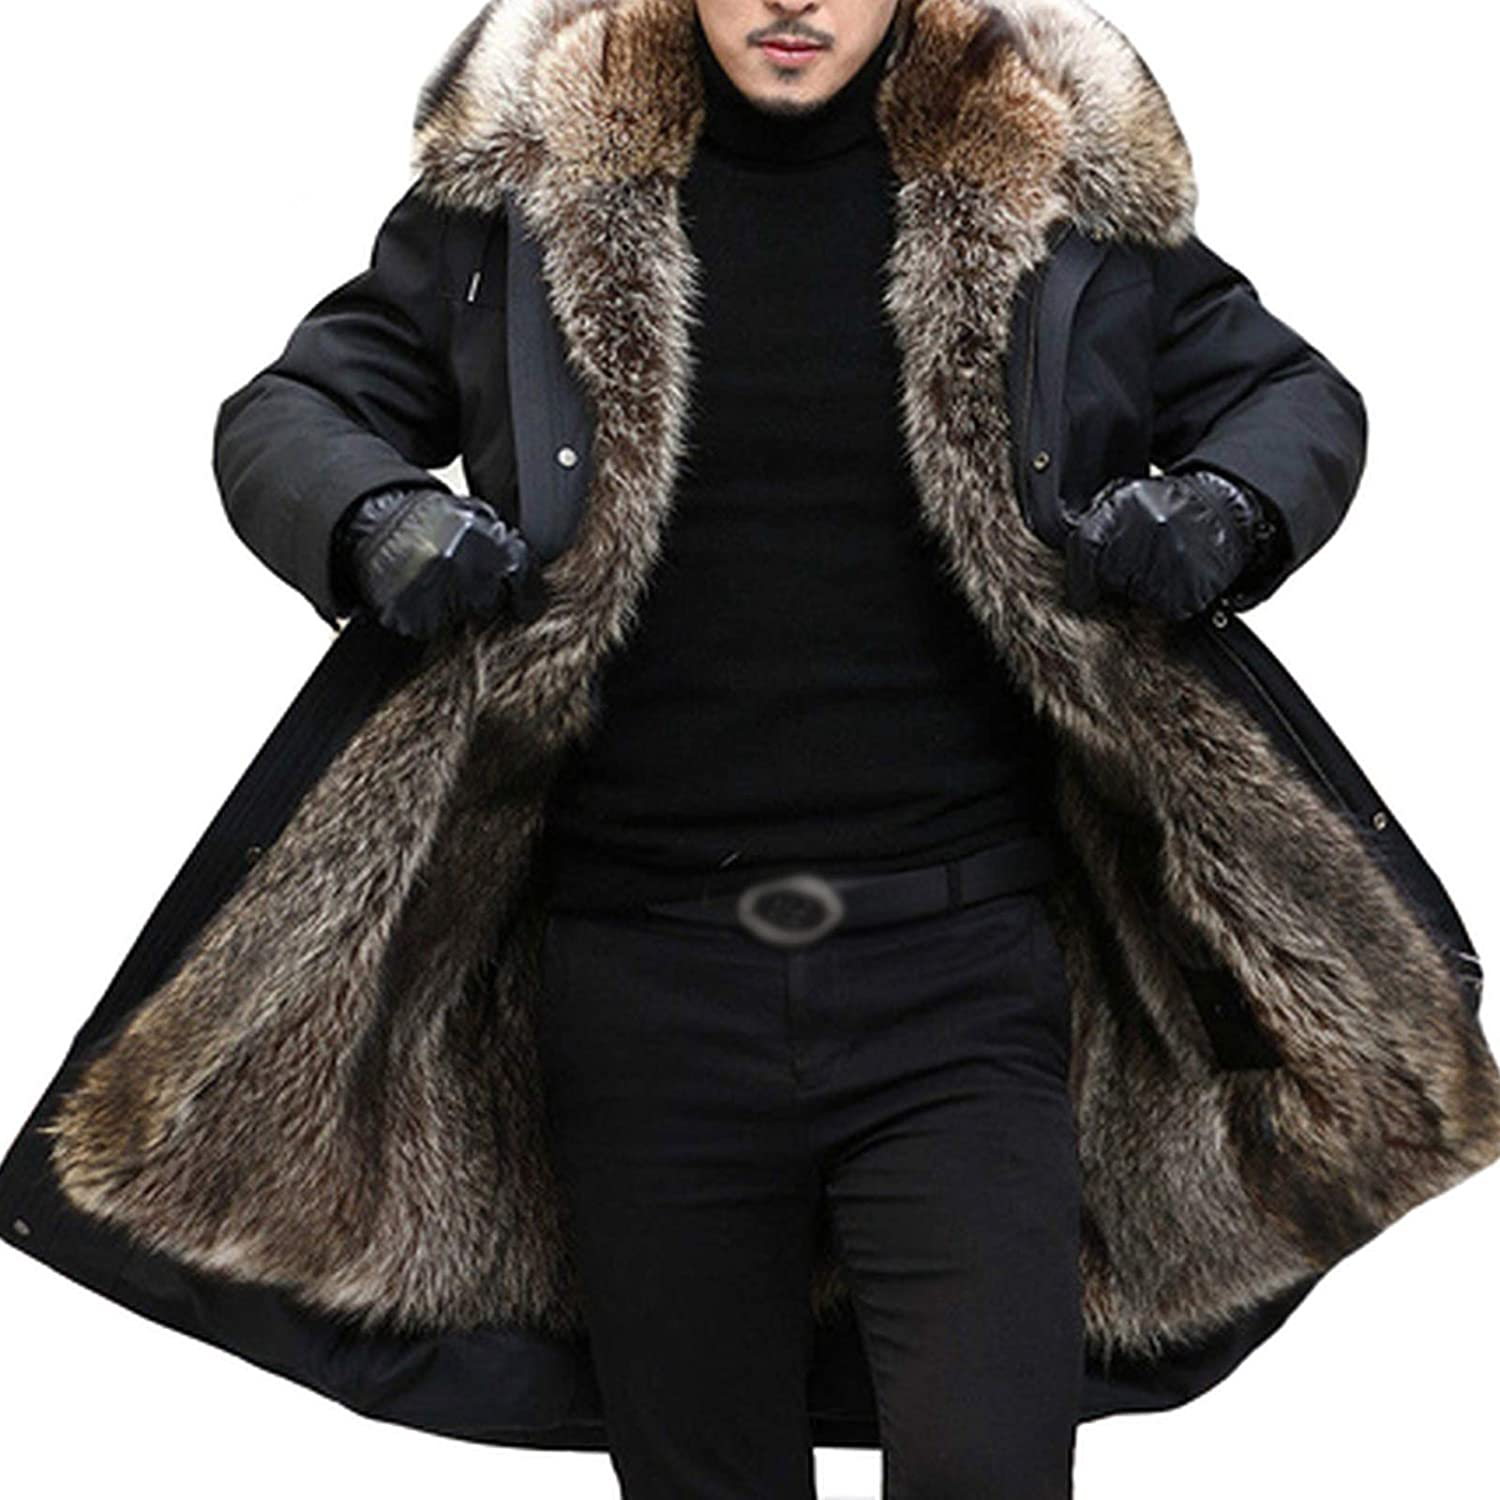 Winter Men'S New sales Some reservation Long Coat With Big Racc Collar Thick Fake Parka Fur